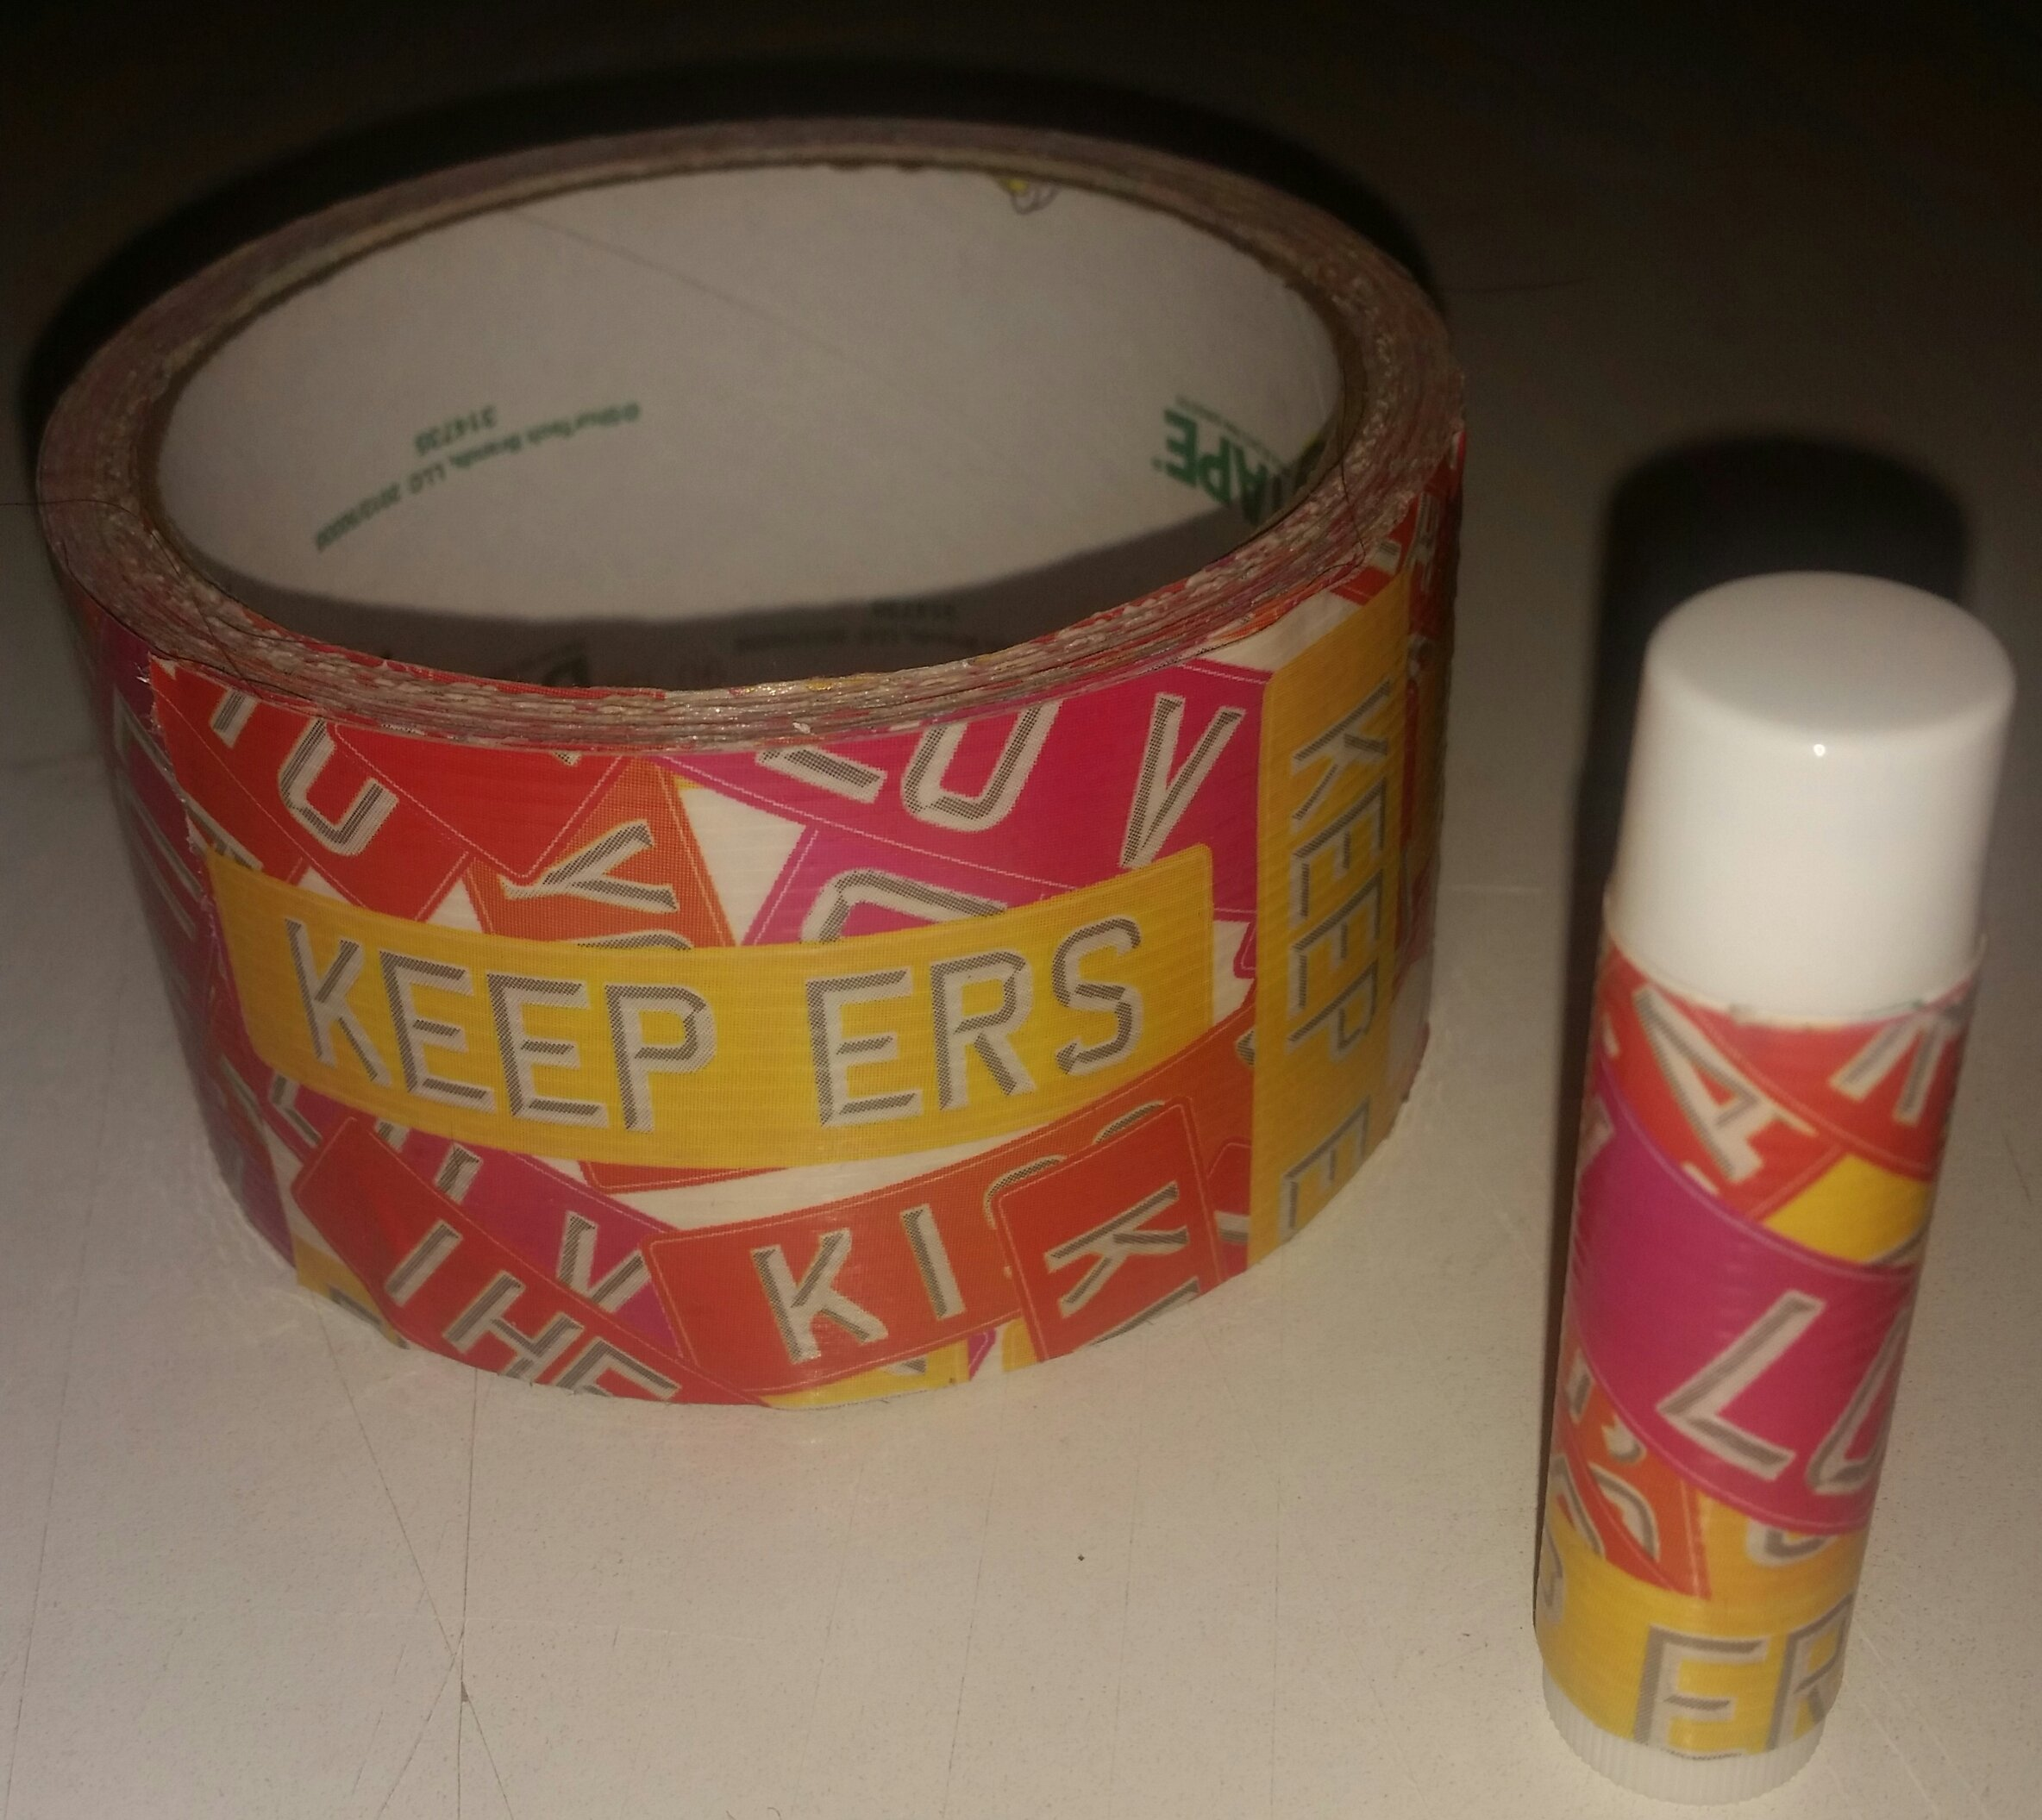 25 Love Signs Chap Stick Lip Balm twenty five pack pieces BULK